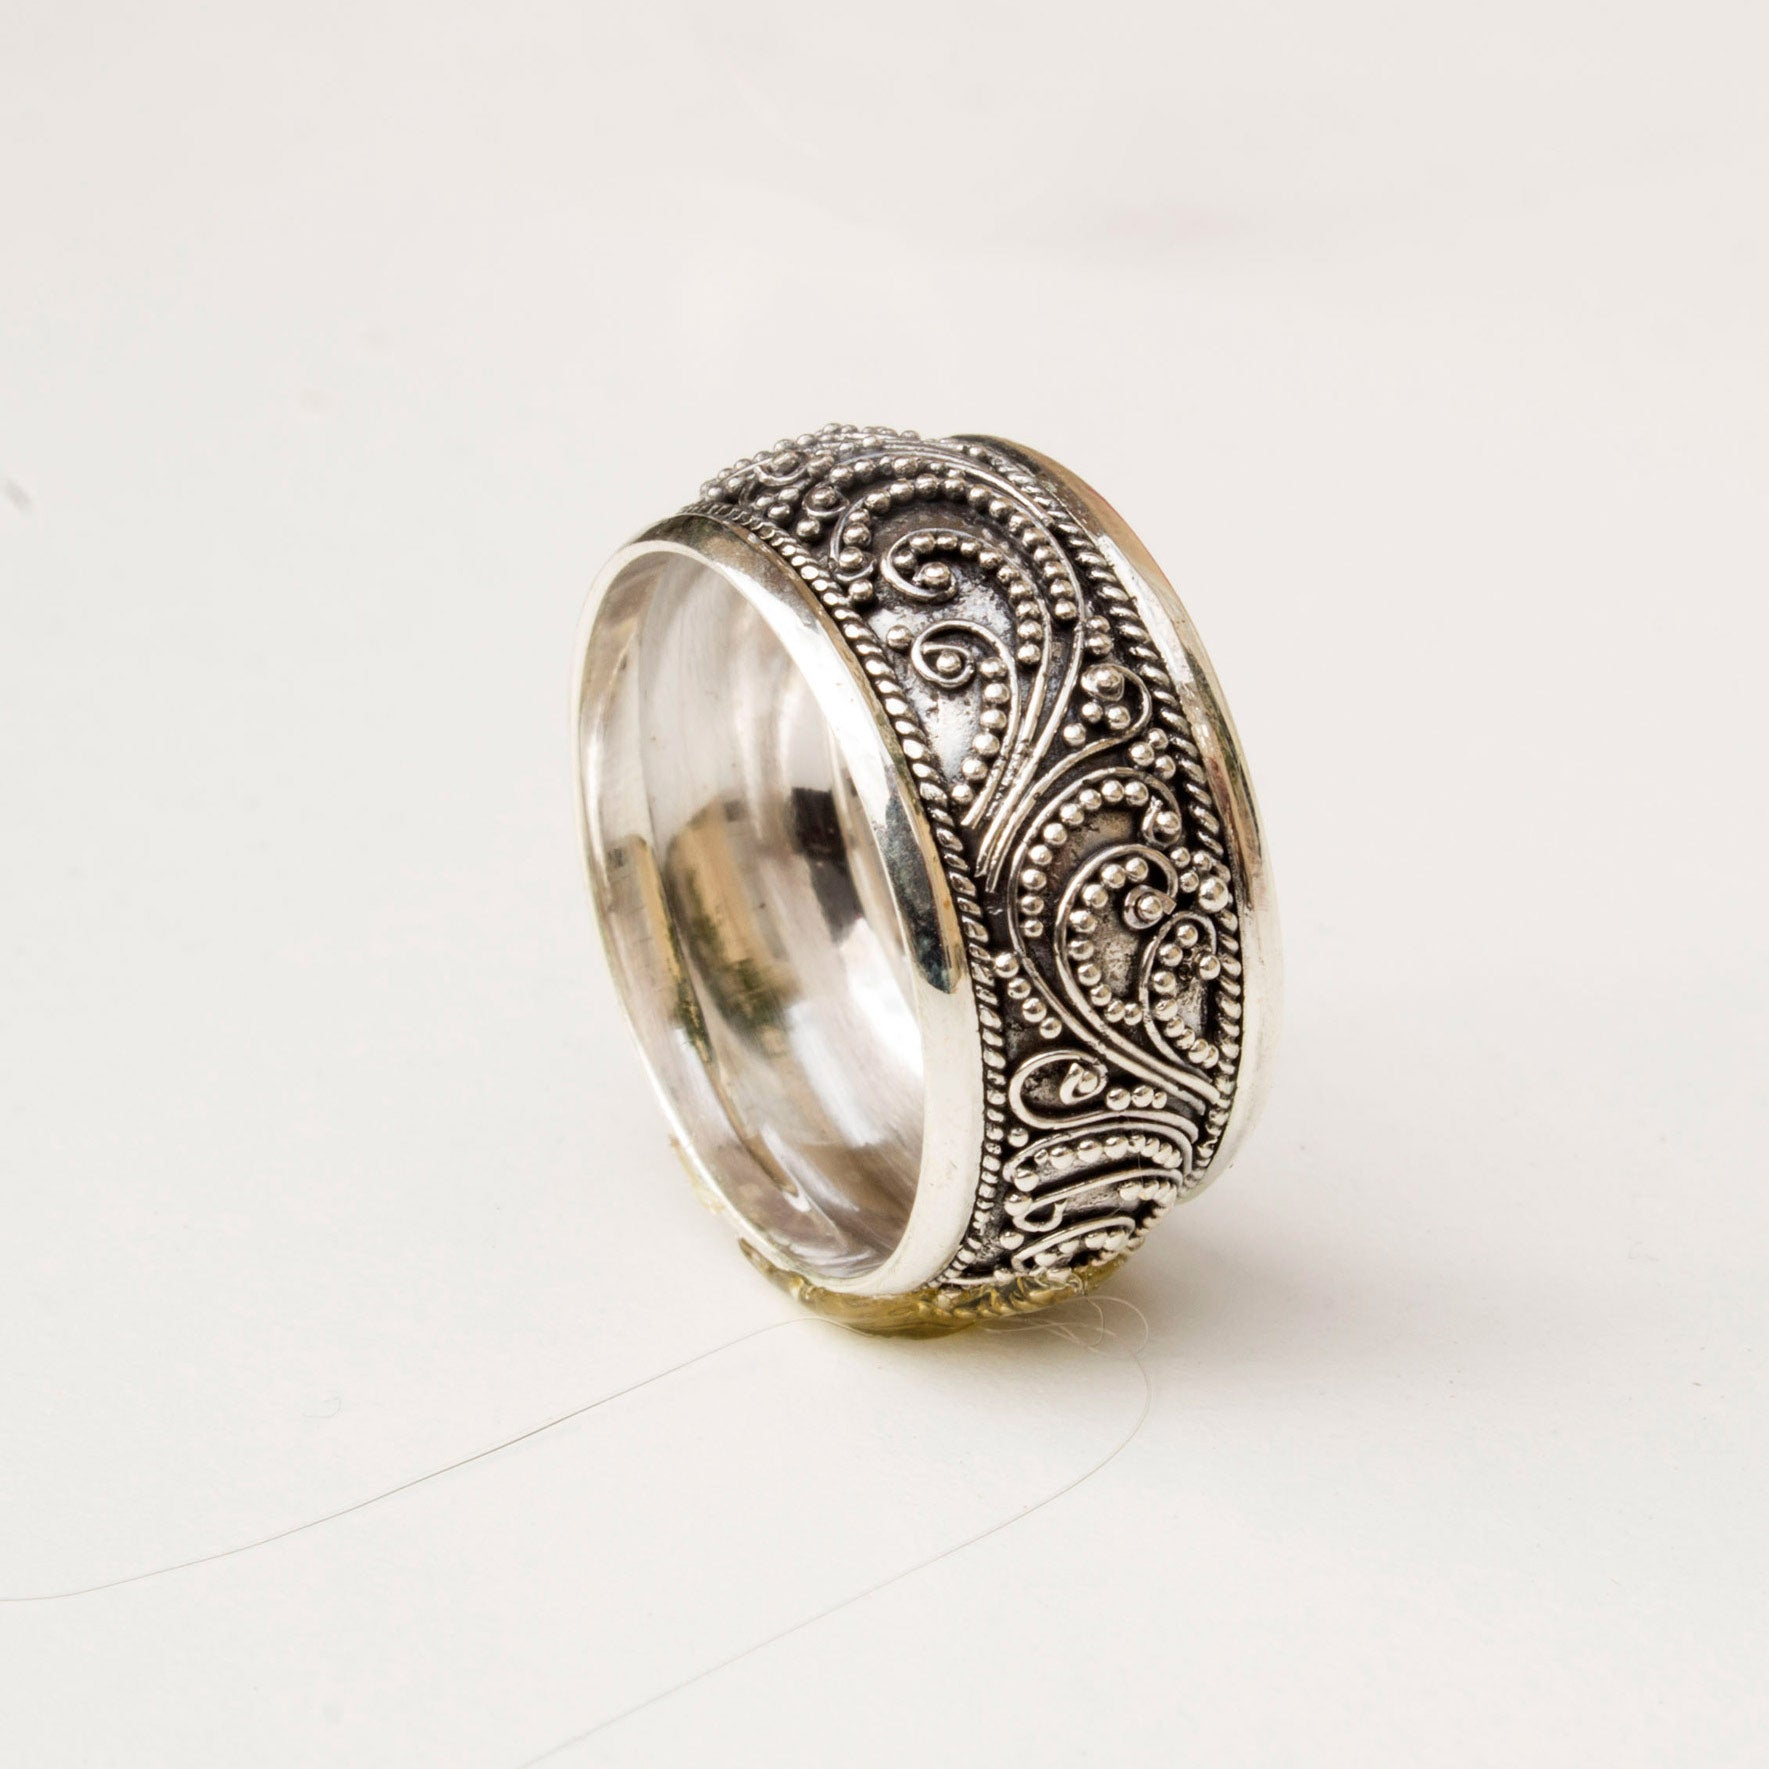 Filigree Sterling Silver Ring